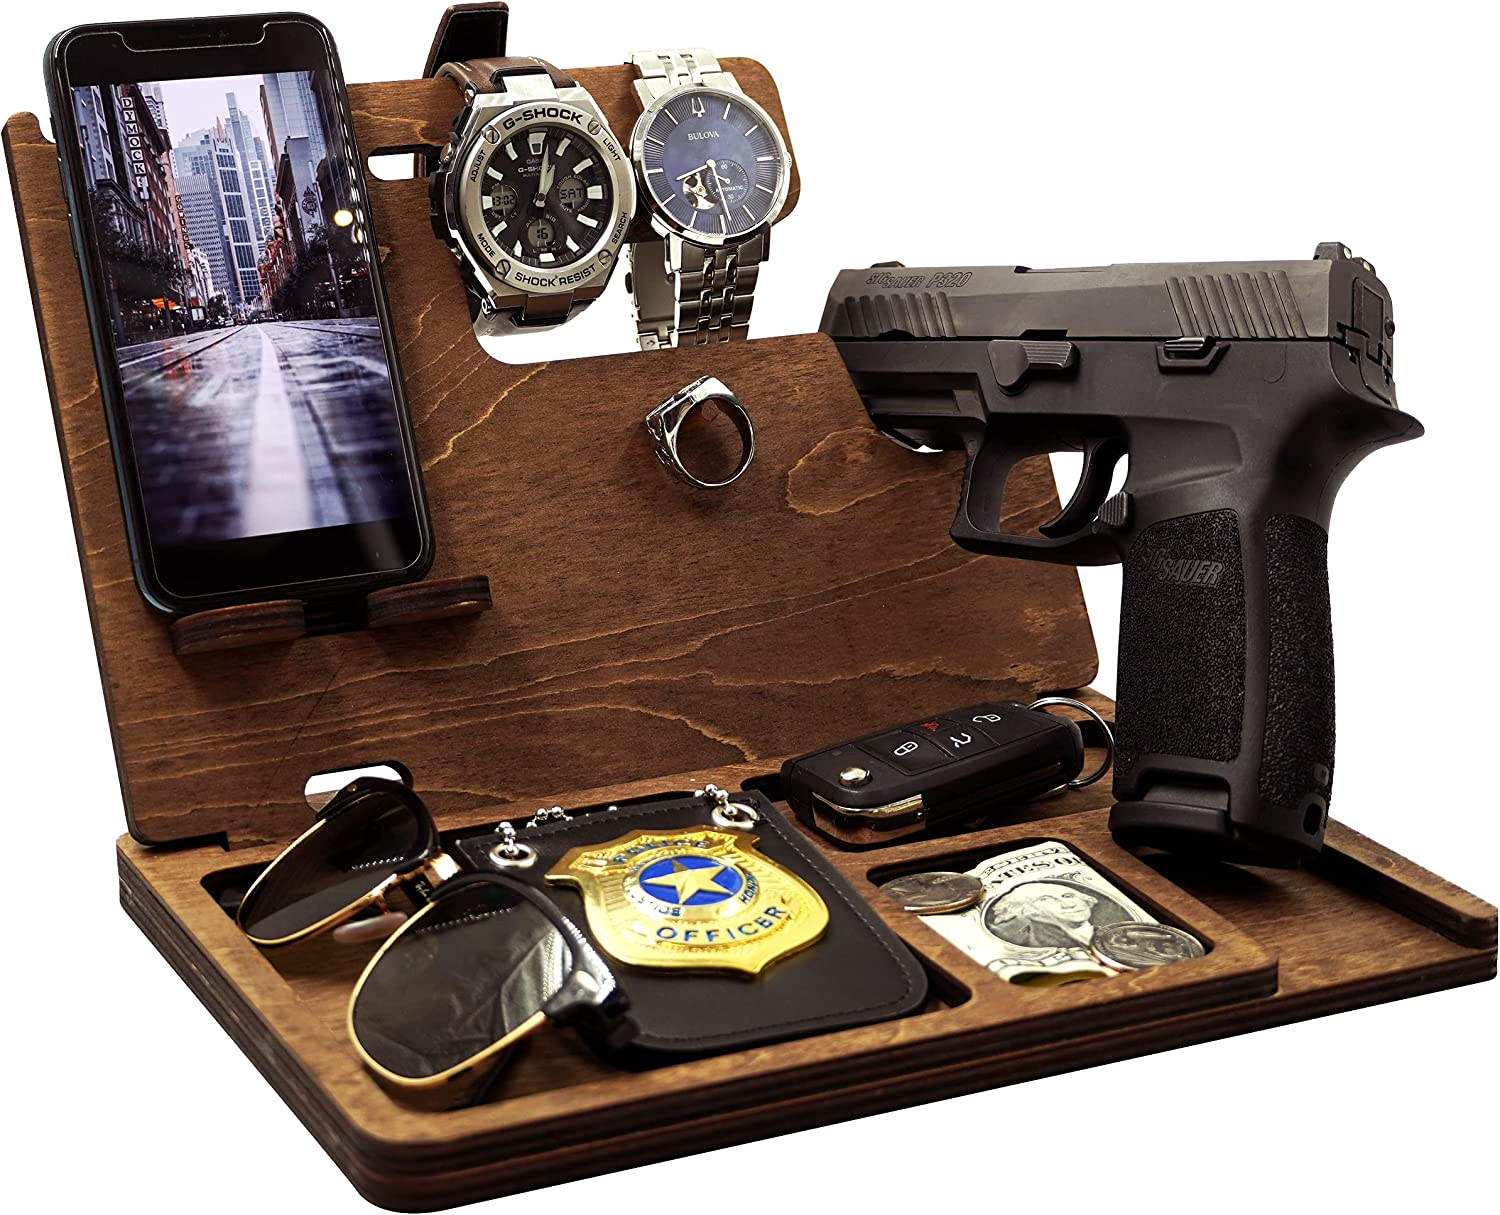 LegnoVault Wooden Gun Docking Station - Police Be Fees Industry No. 1 free Gifts Officer